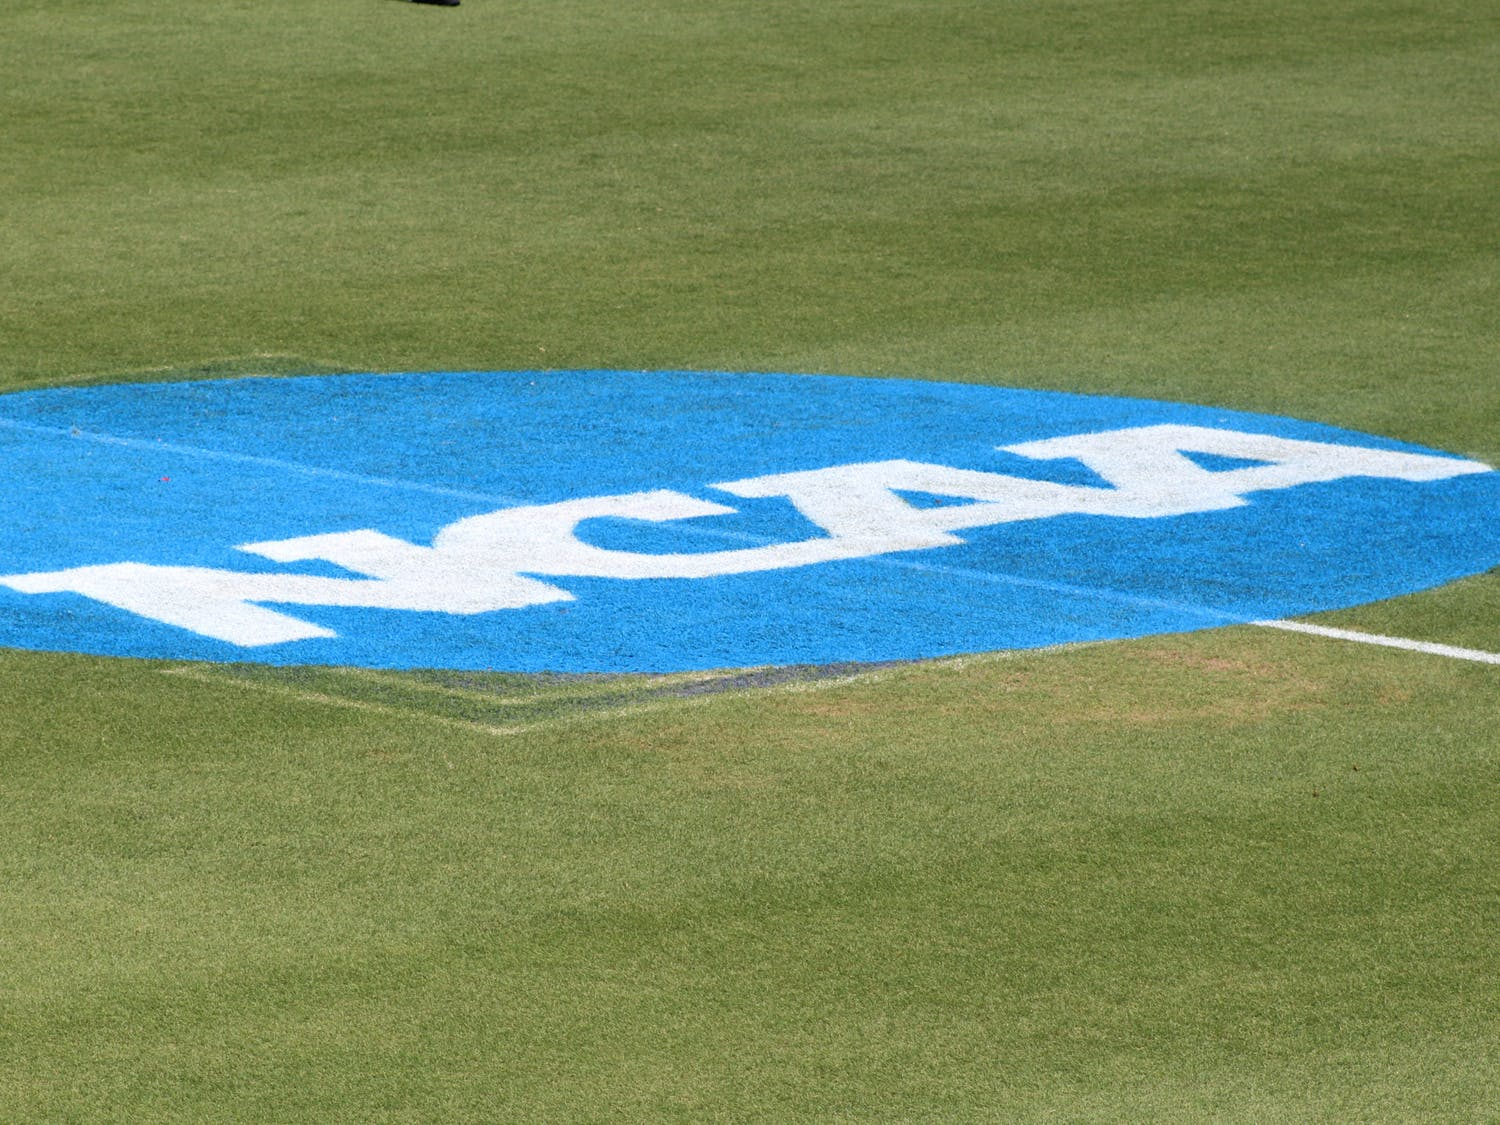 The NCAA announced June 30 increased NIL freedoms for the entire country starting July 1.